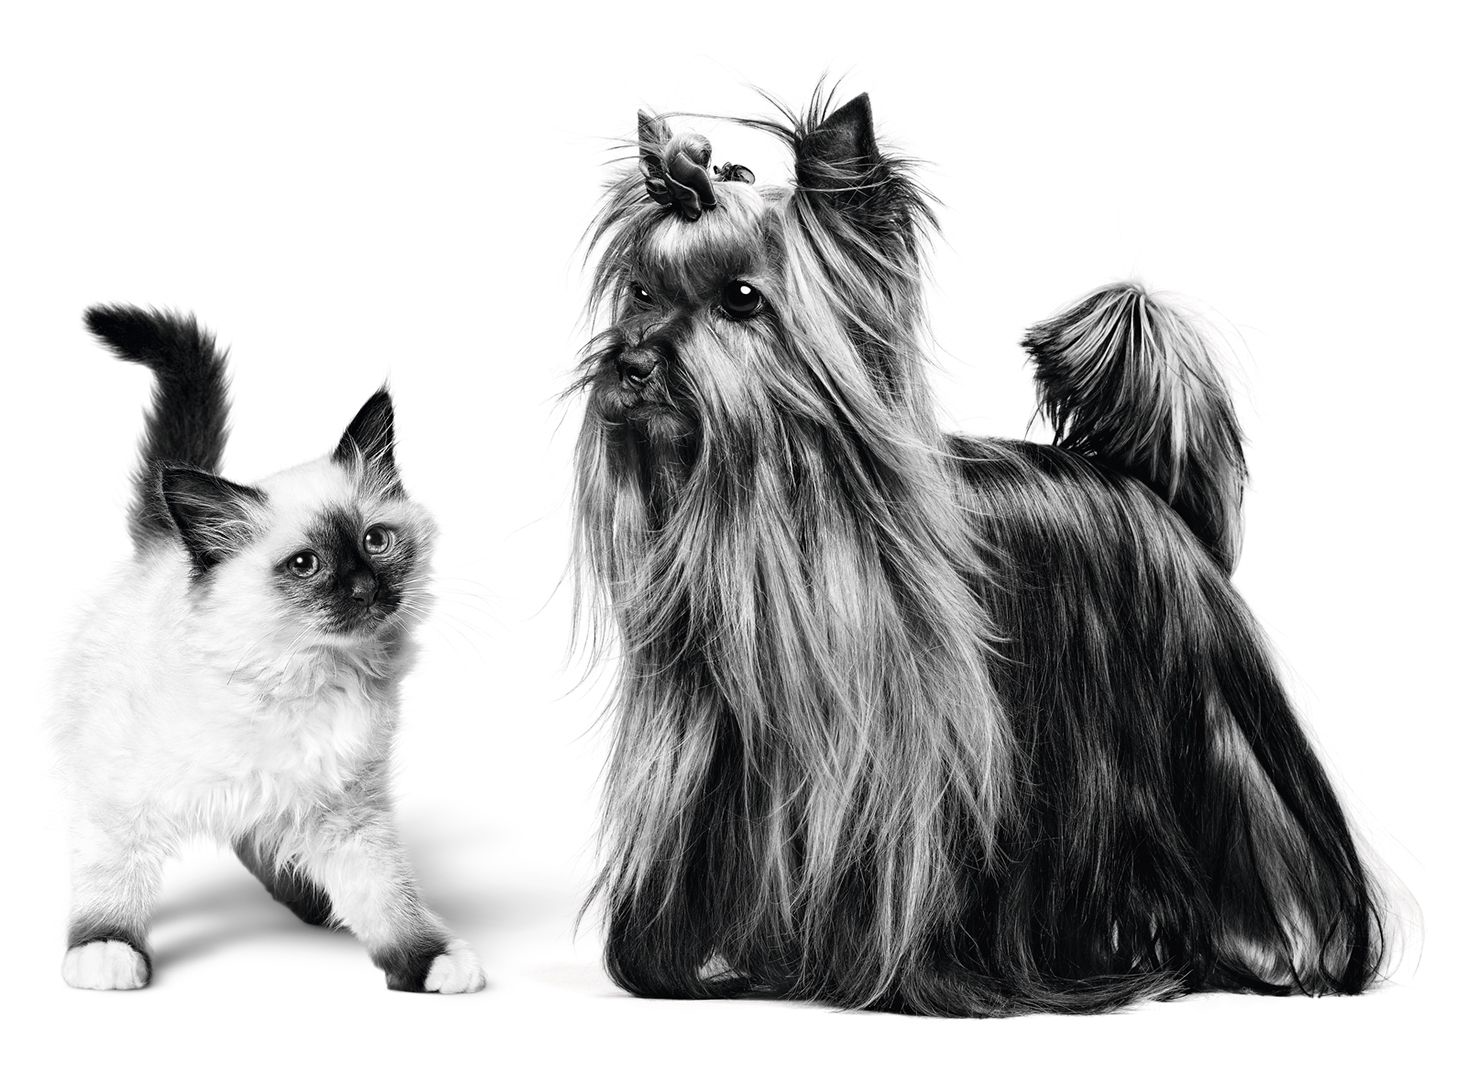 Yorkshire Terrier dog and Sacred Birman cat stood together